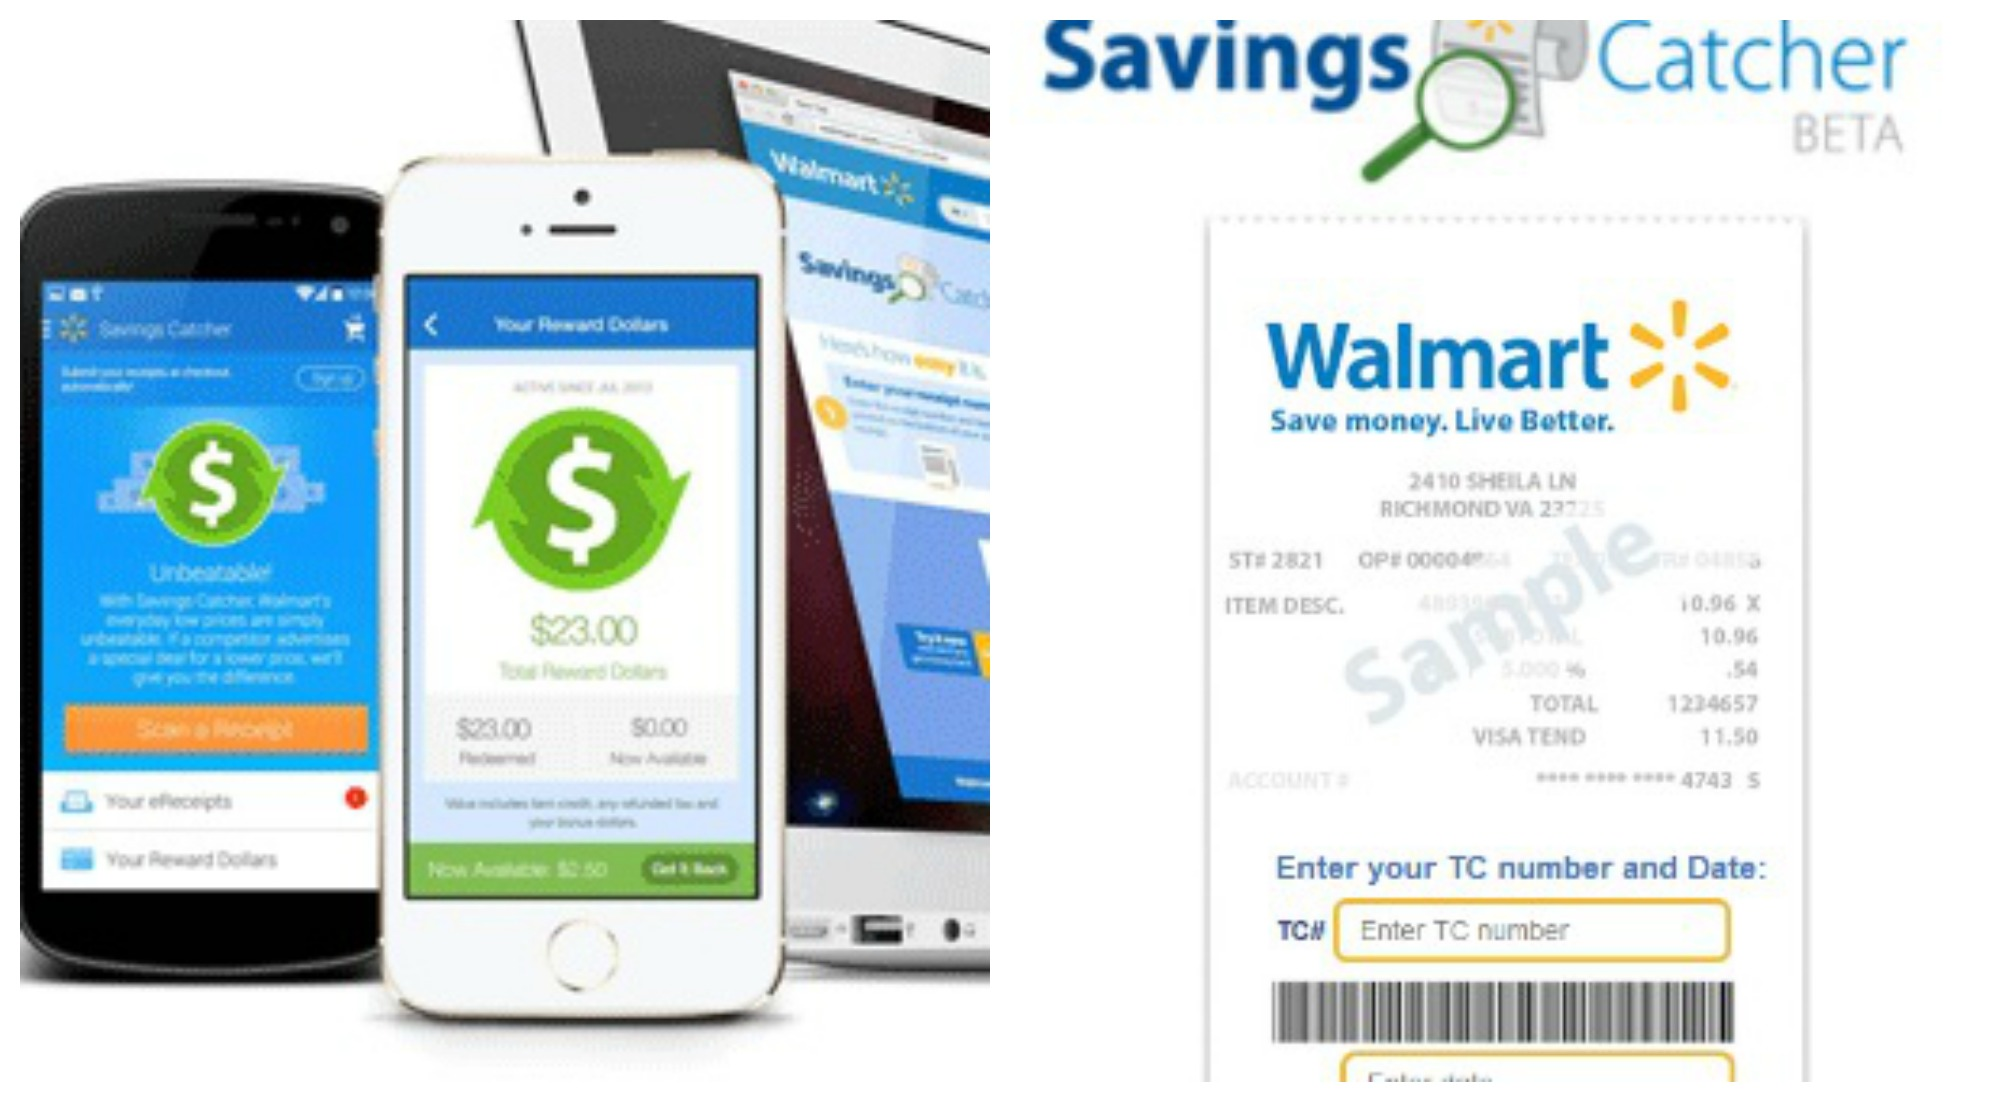 The magic of price matching on to step two the savings catcher